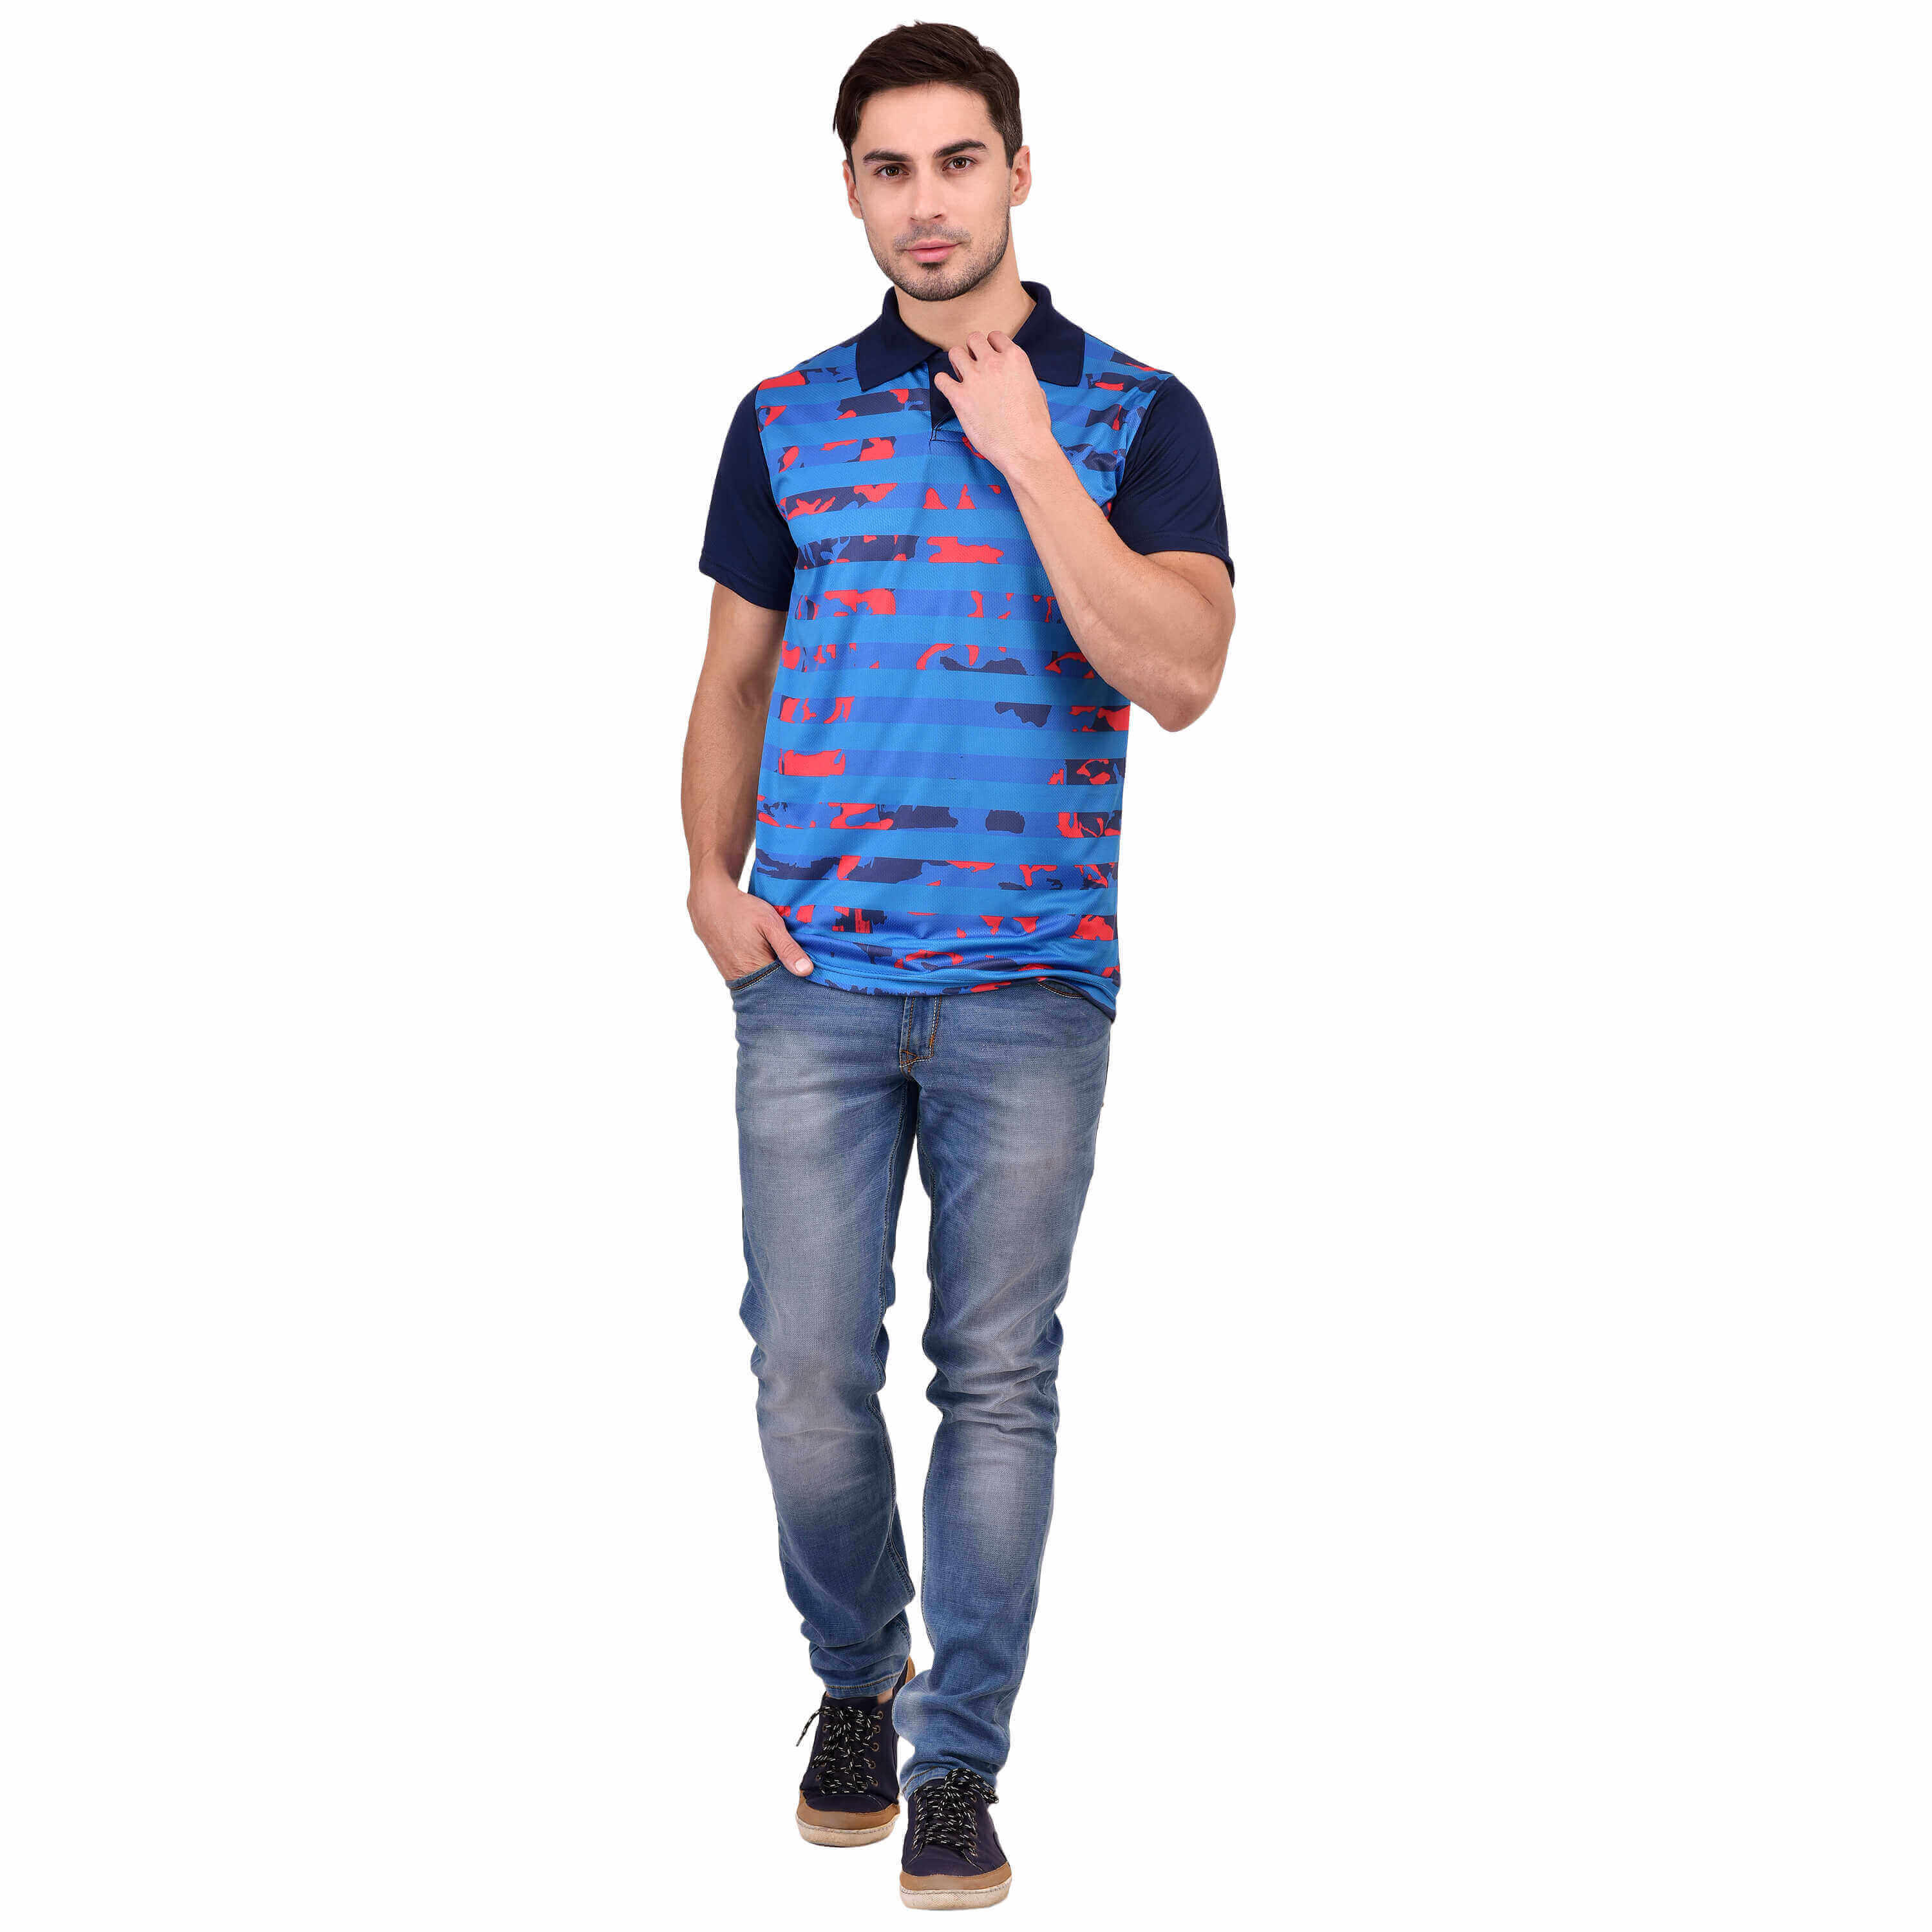 Cool T Shirts Manufacturers in Solapur